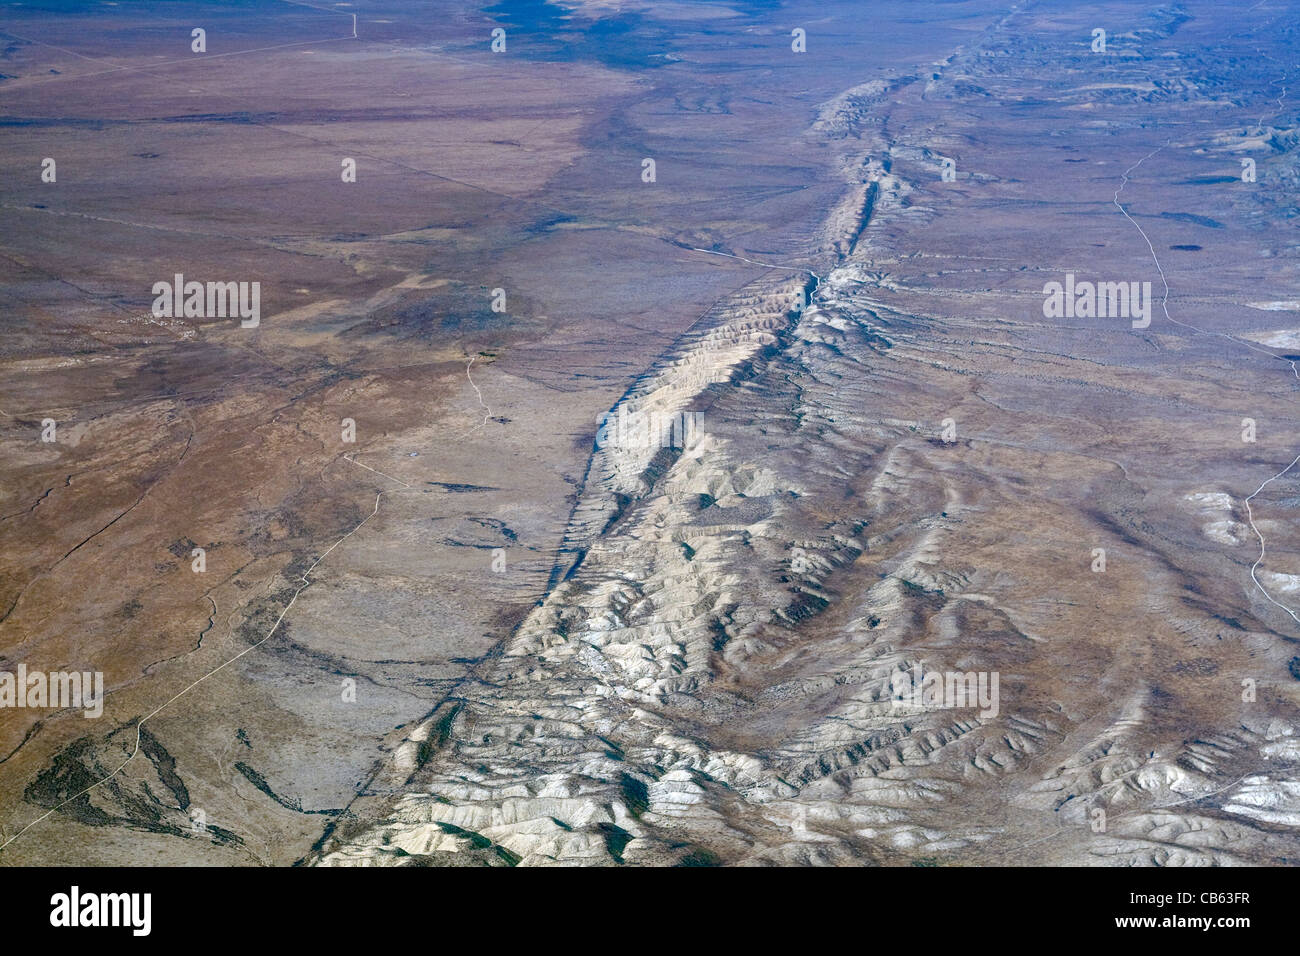 san andreas fault images.html